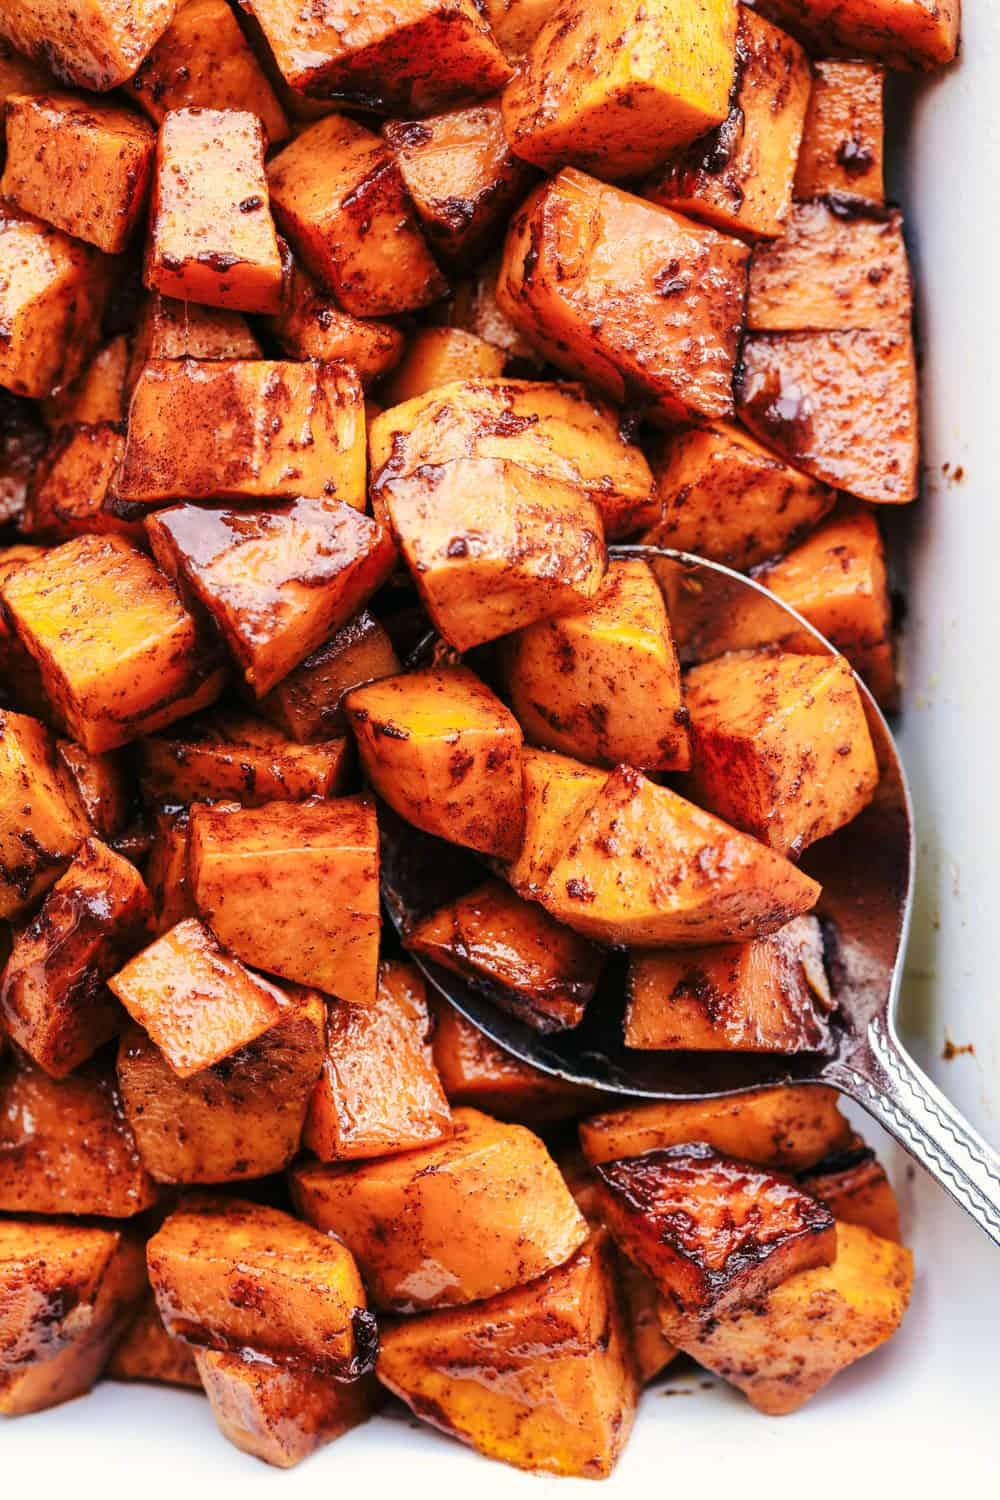 Spoonful of Roasted Honey Cinnamon Butter Sweet Potatoes.